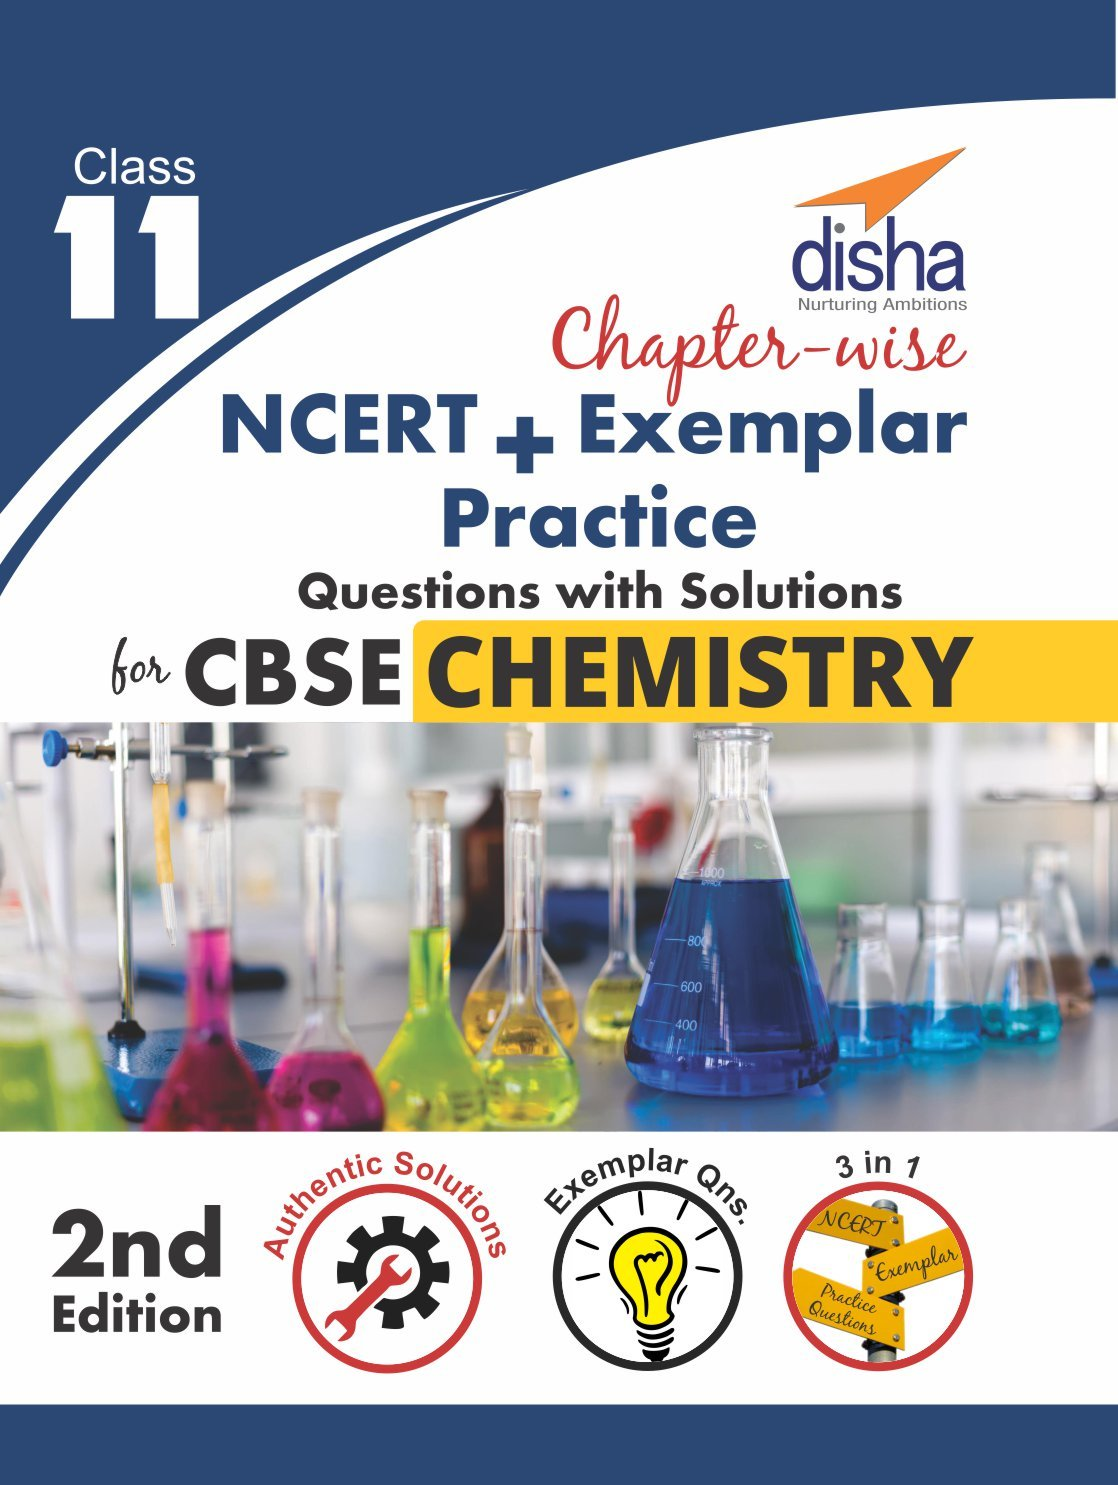 Chapter-wise NCERT + Exemplar + Practice Questions with